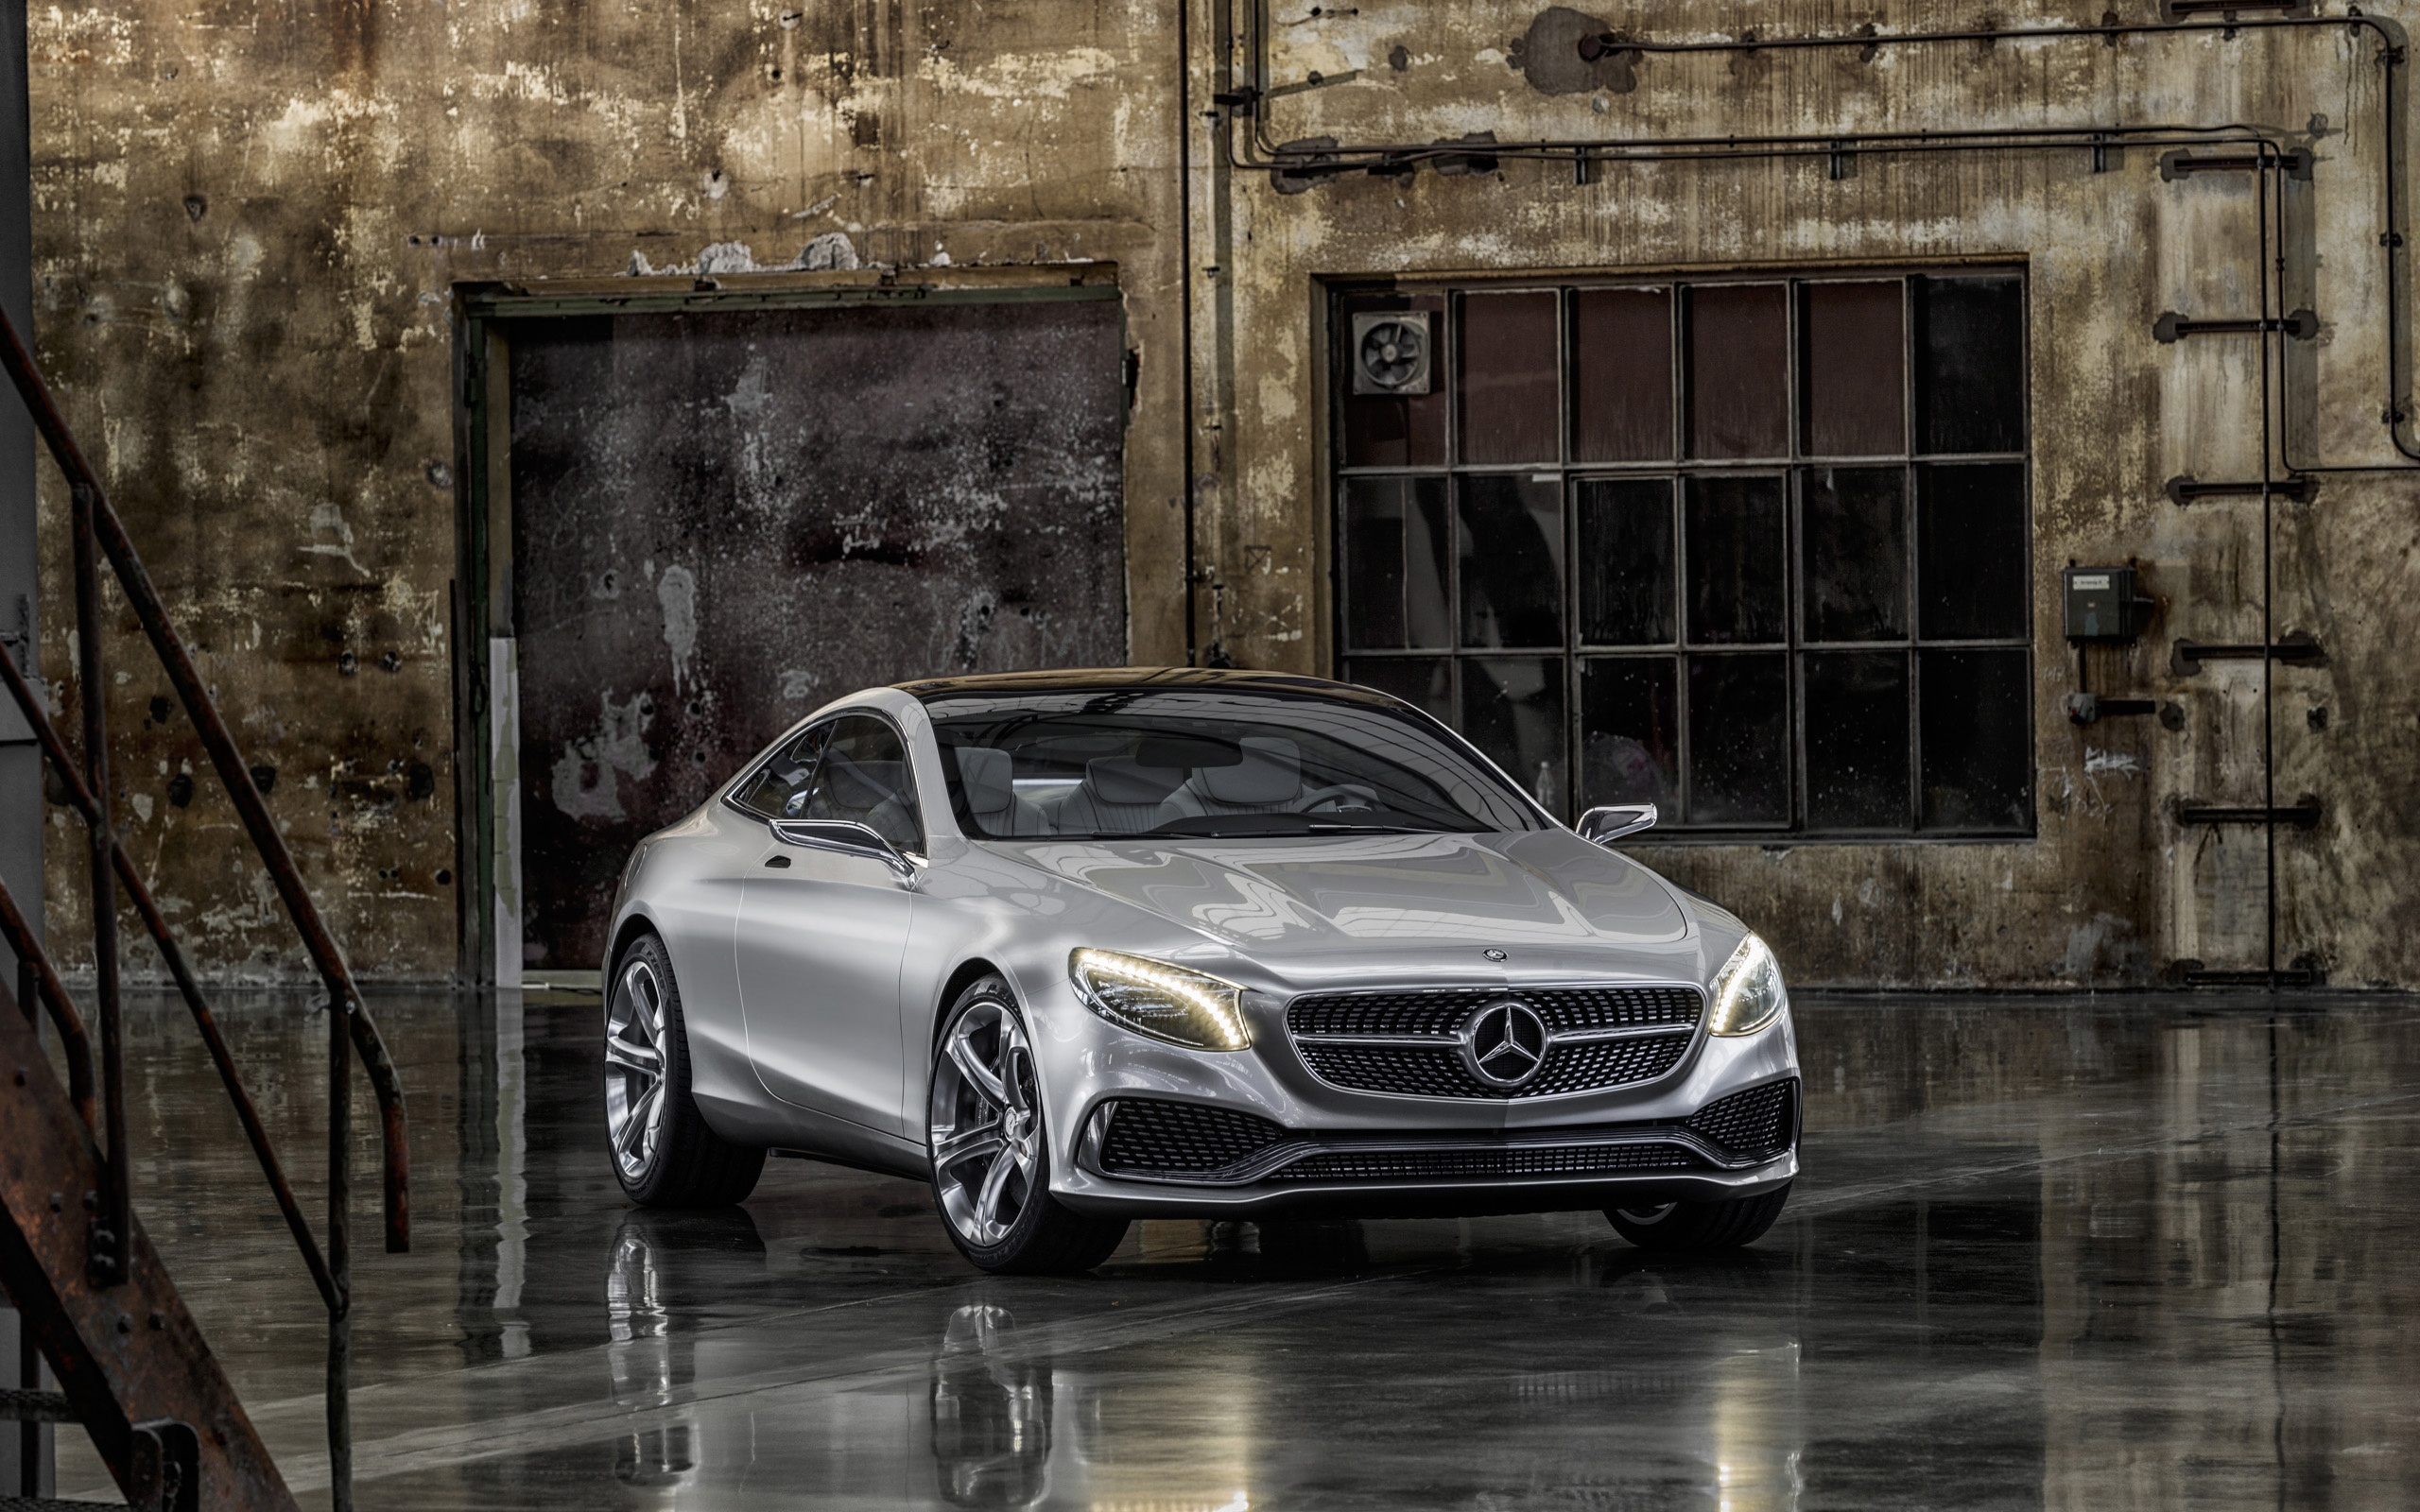 Mercedes Benz S Class Coupe 2013 Wallpapers In Jpg Format For Free